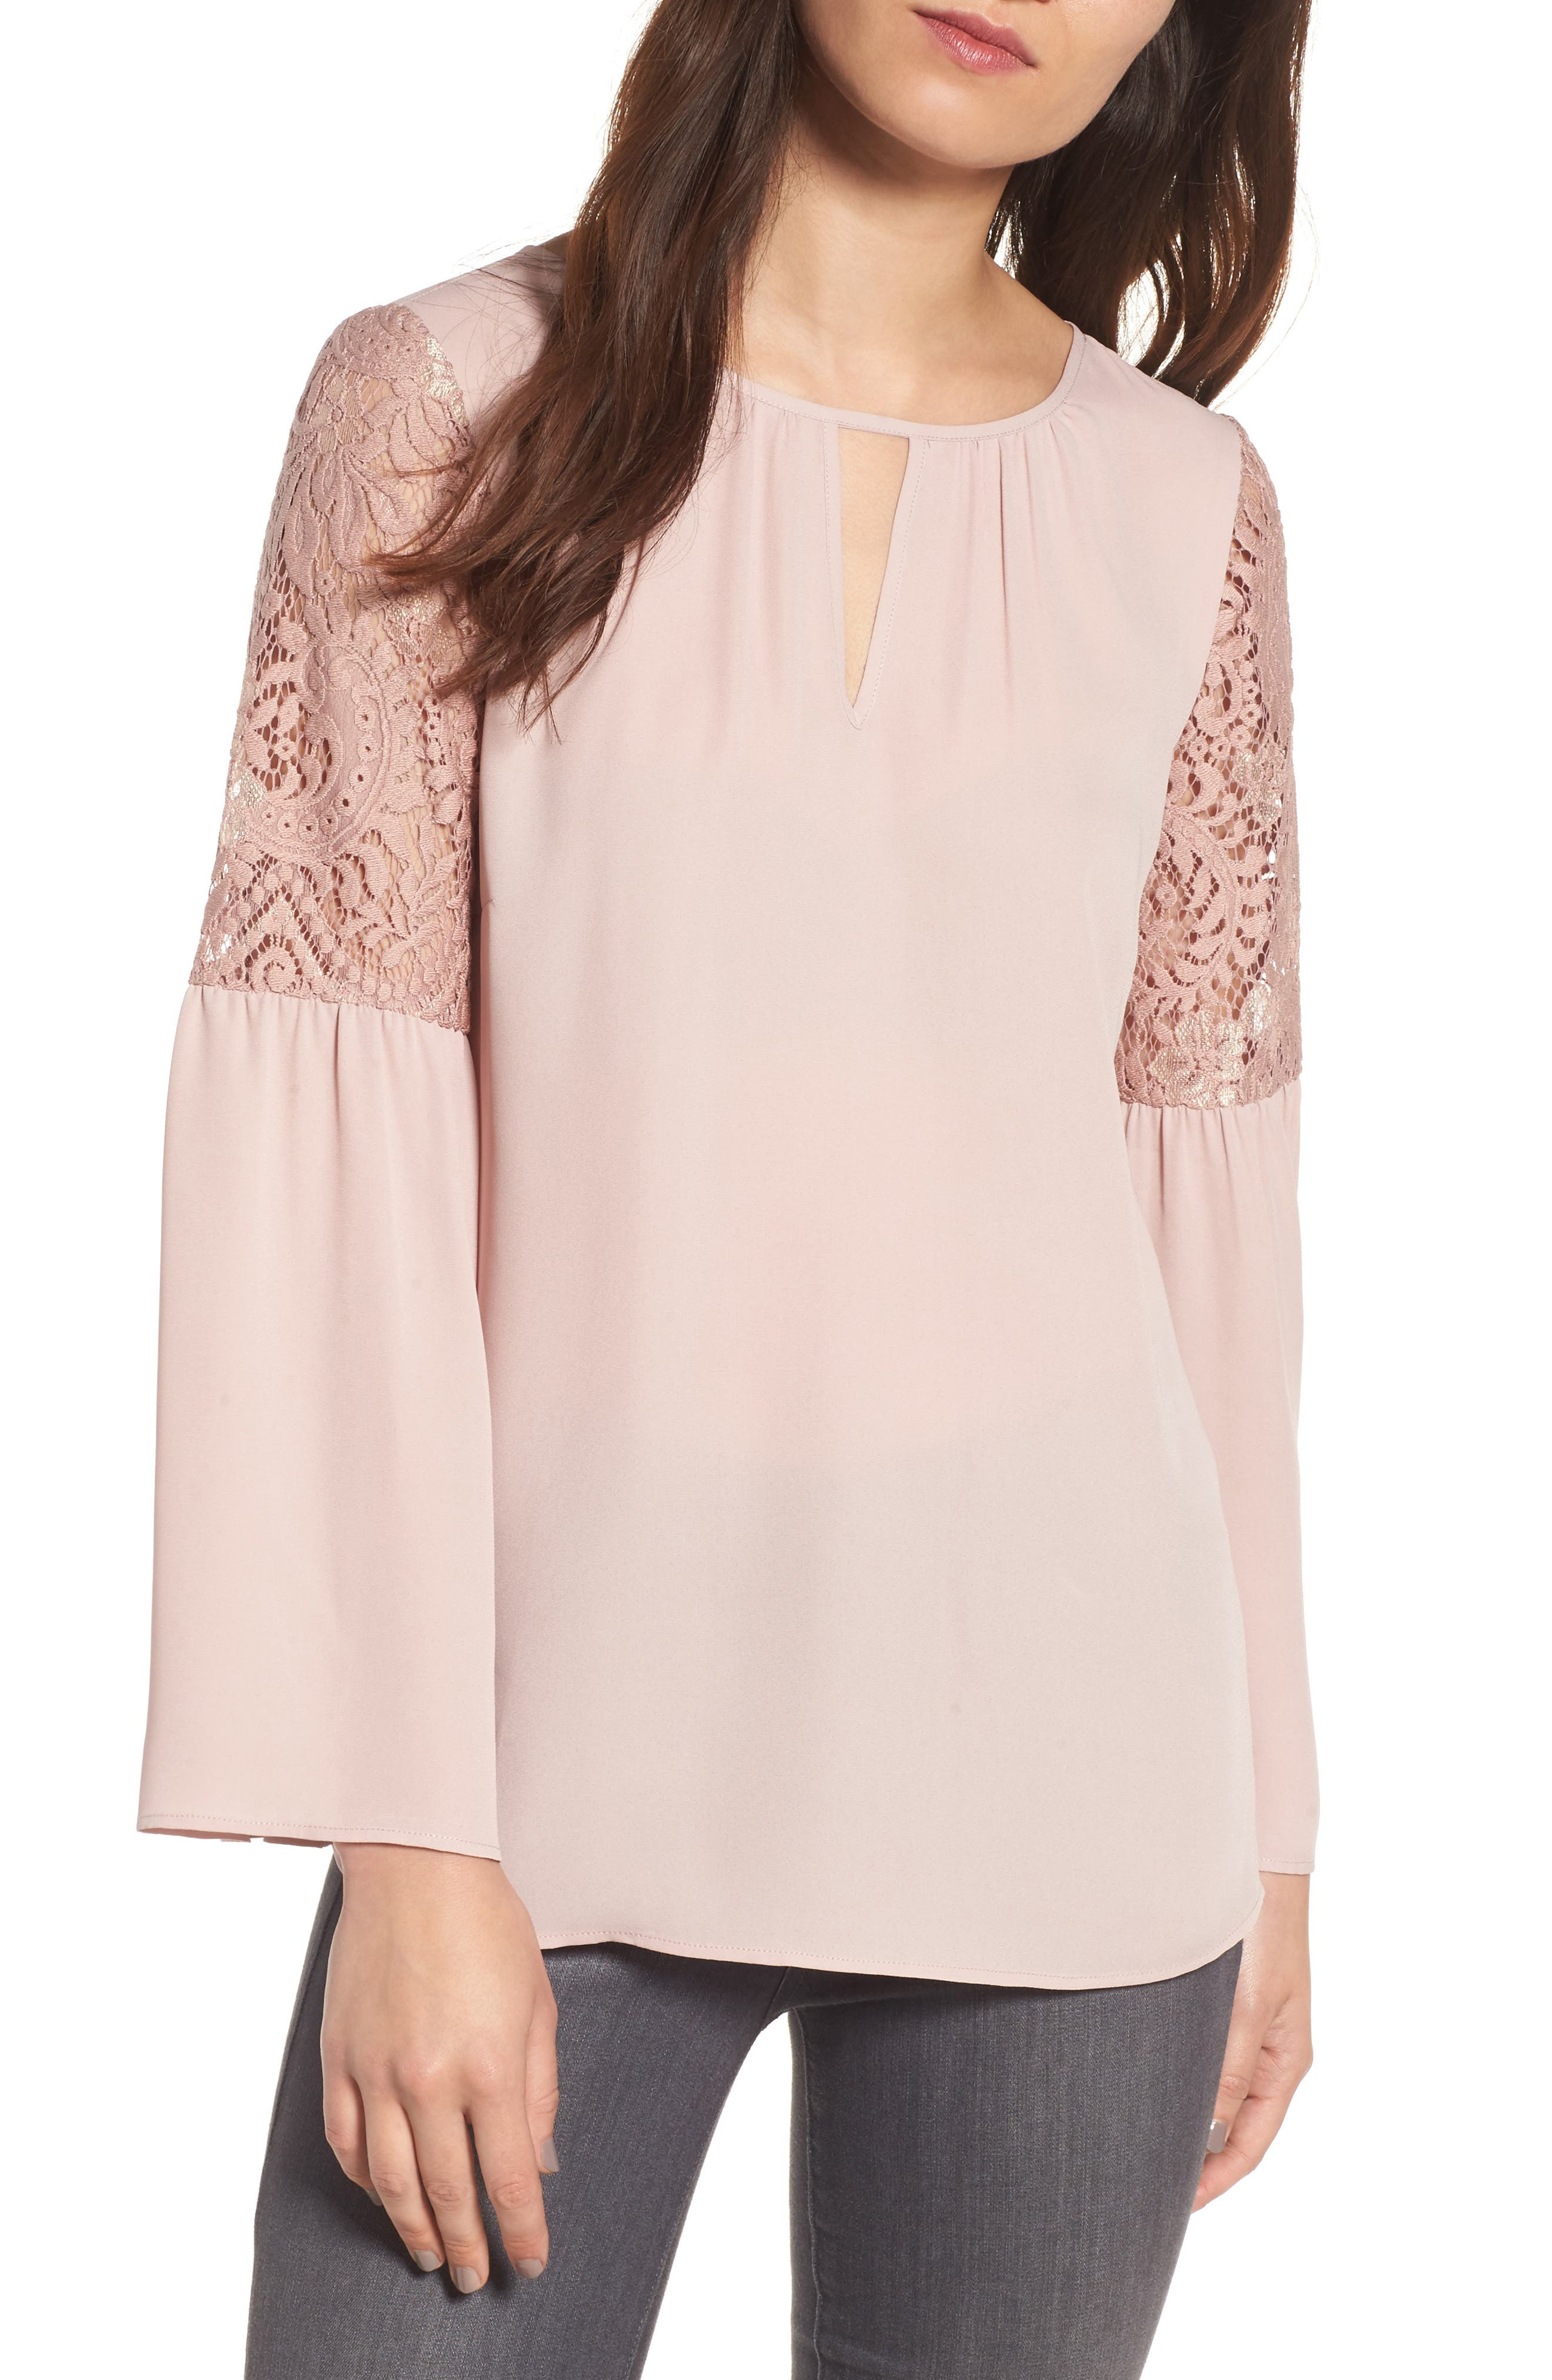 Main Image - Chelsea28 Lace Bell Sleeve Top